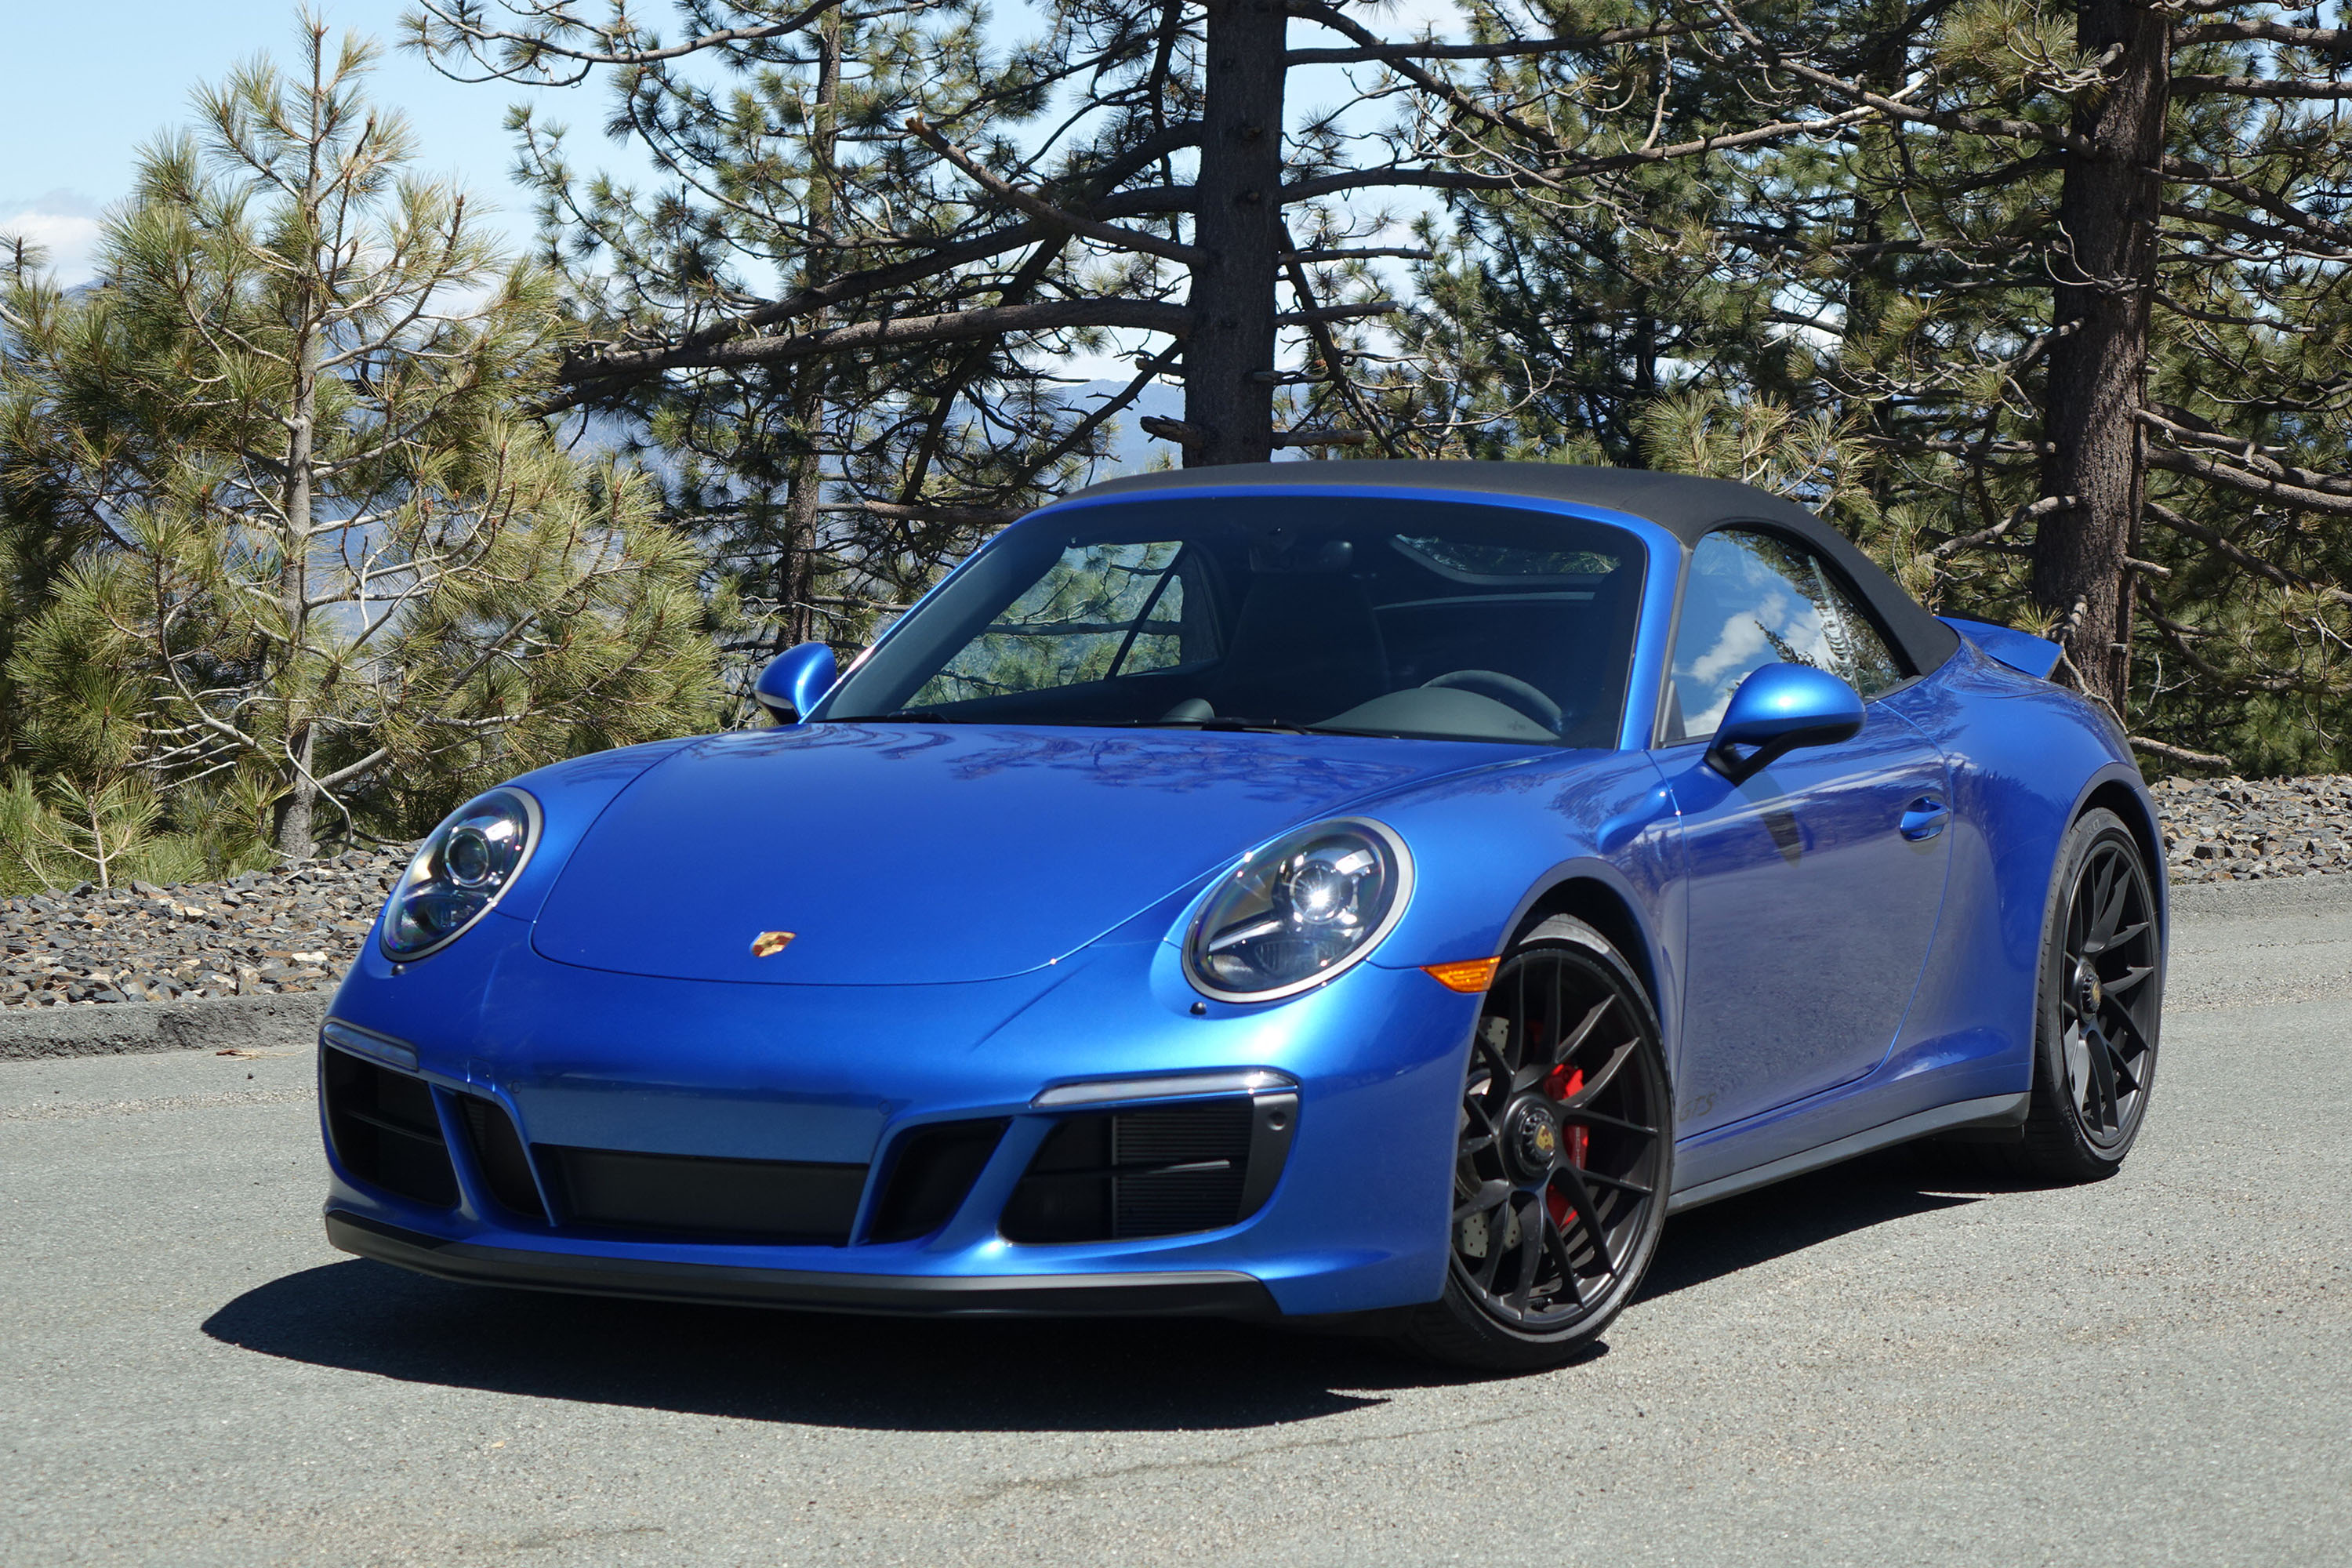 2017 Porsche 911 Carrera Gts Cabriolet First Drive Review